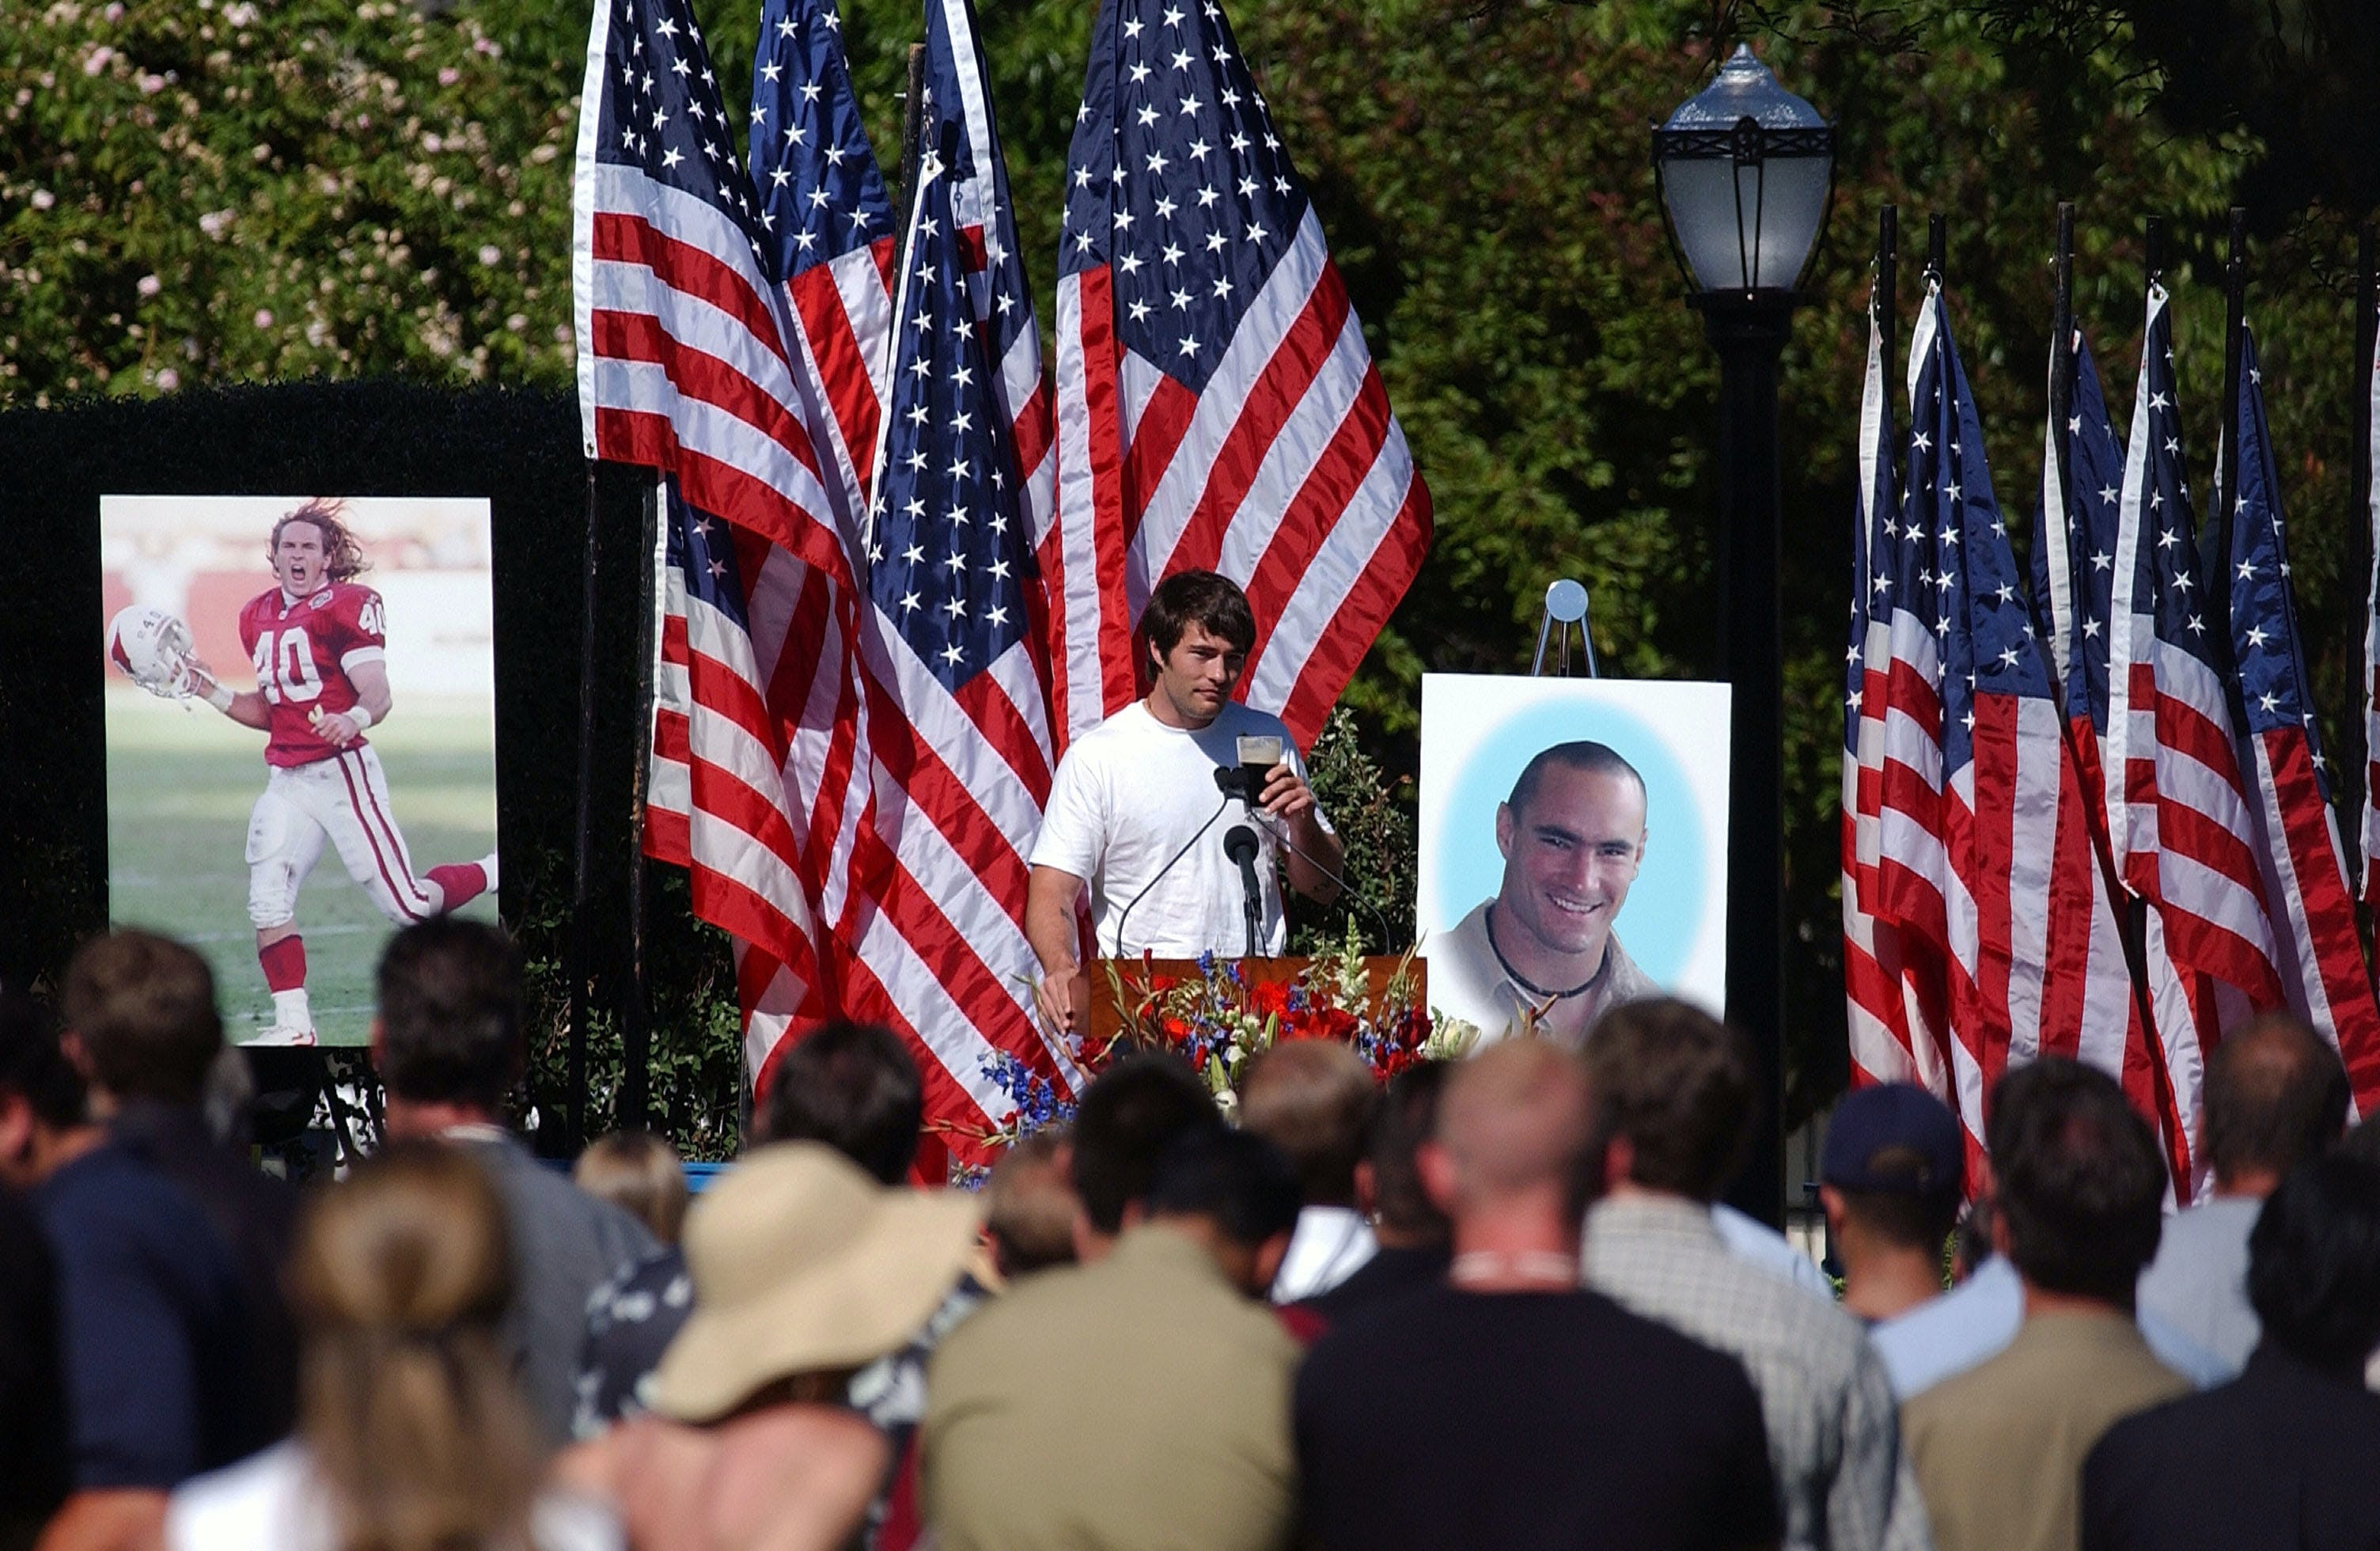 SAN JOSE, CA - MAY 3:  Richard Tillman, the brother of  Cpl. Pat Tillman, raises a toast with a glass of Guiness, as he speaks at a memorial service for his Tillman, who was killed in action in Afghanistan April 22, 2004, at the San Jose Municipal Rose Garden May 3, 2004 in San Jose, California.  Tillman turned down a lucrative NFL contract to serve with as a US Army Ranger.  (Photo by David Paul Morris/Getty Images)